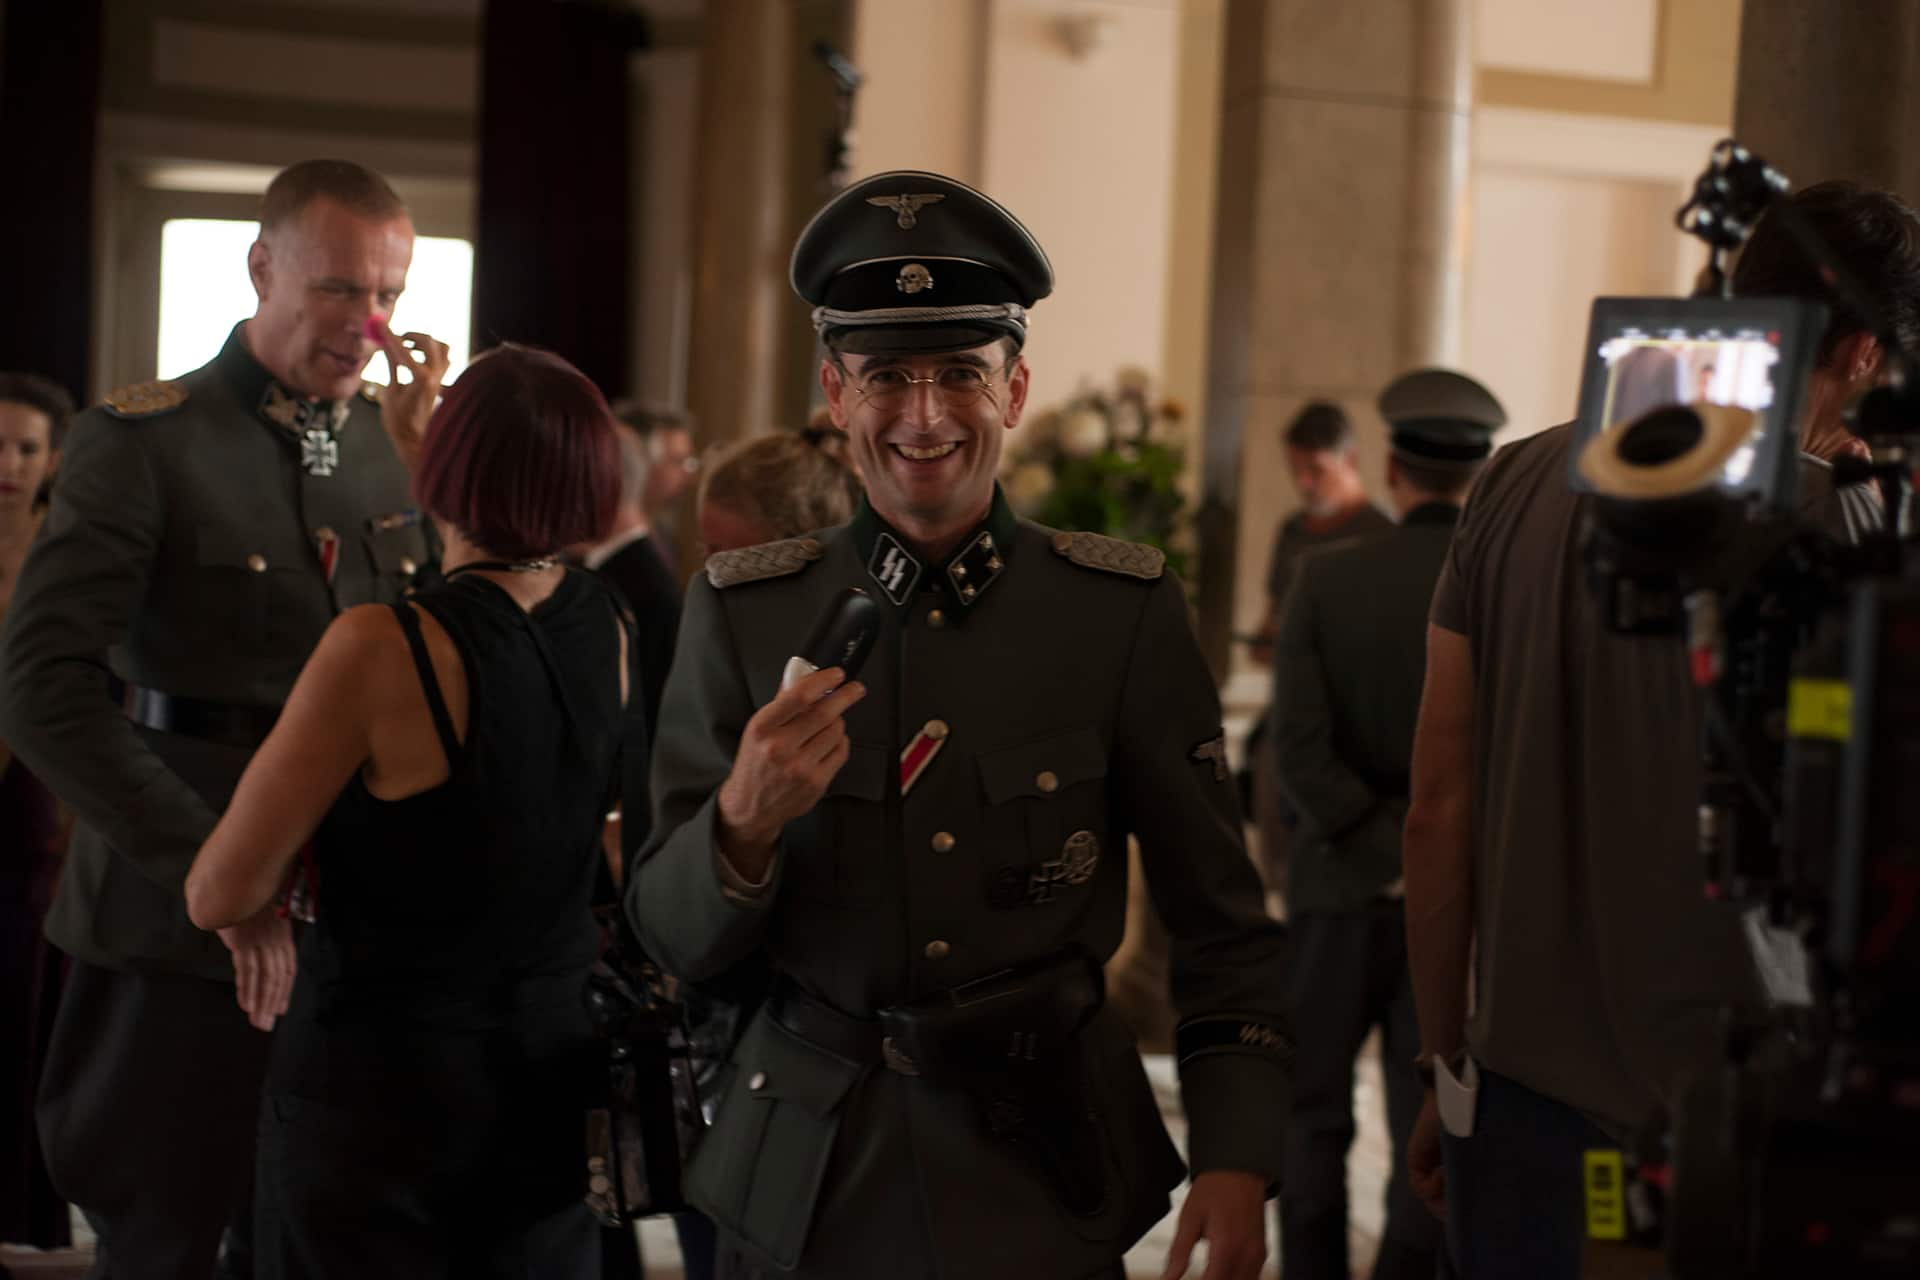 Jack Laskey (Alfred) on the set of X Company Season 3 in Budapest, Hungary.